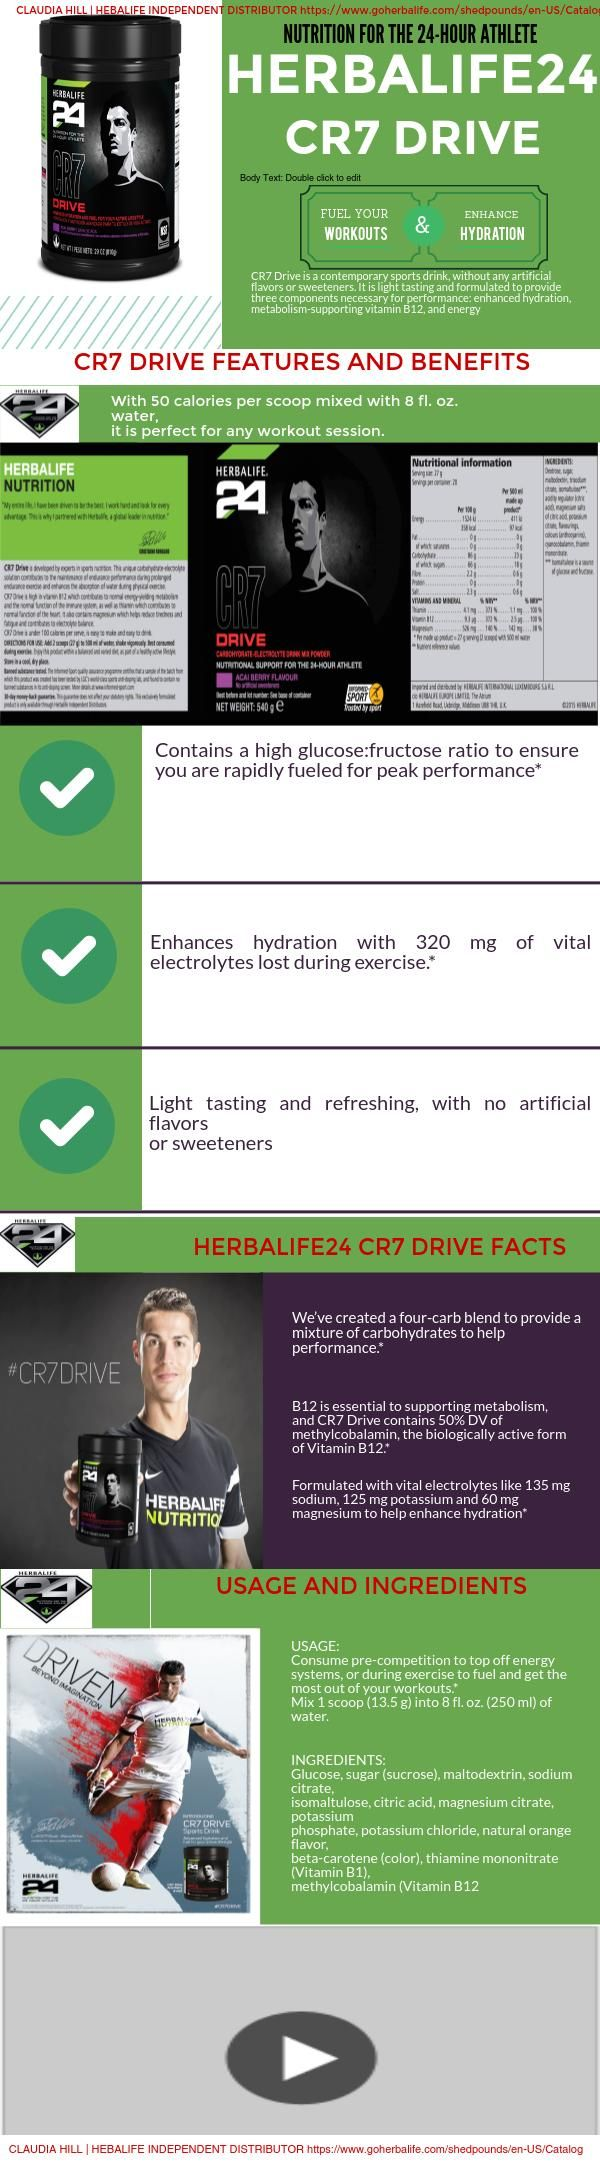 #Herbalife24 #CR7Drive Infographic | Developed in close partnership with international soccer superstar Cristiano Ronaldo, CR7 Drive Rapidly fuel your workouts and enhance hydration. available at https://www.goherbalife.com/shedpounds/en-US #Herbalife24 #CR7Drive